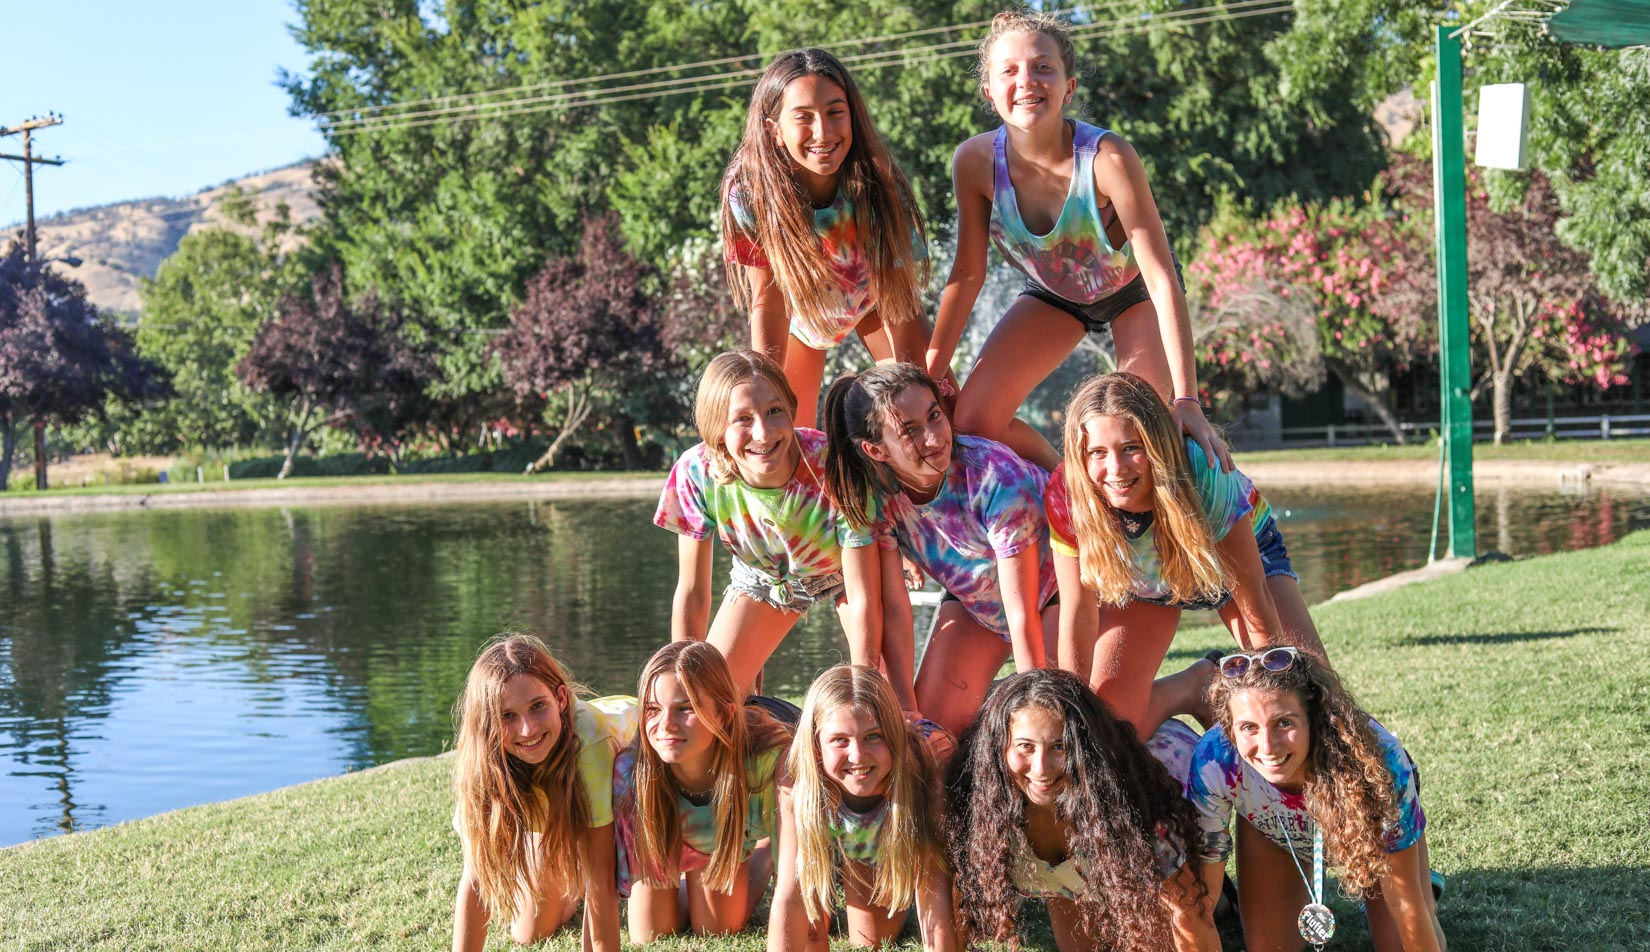 Campers posing for a group photo in a pyramid.